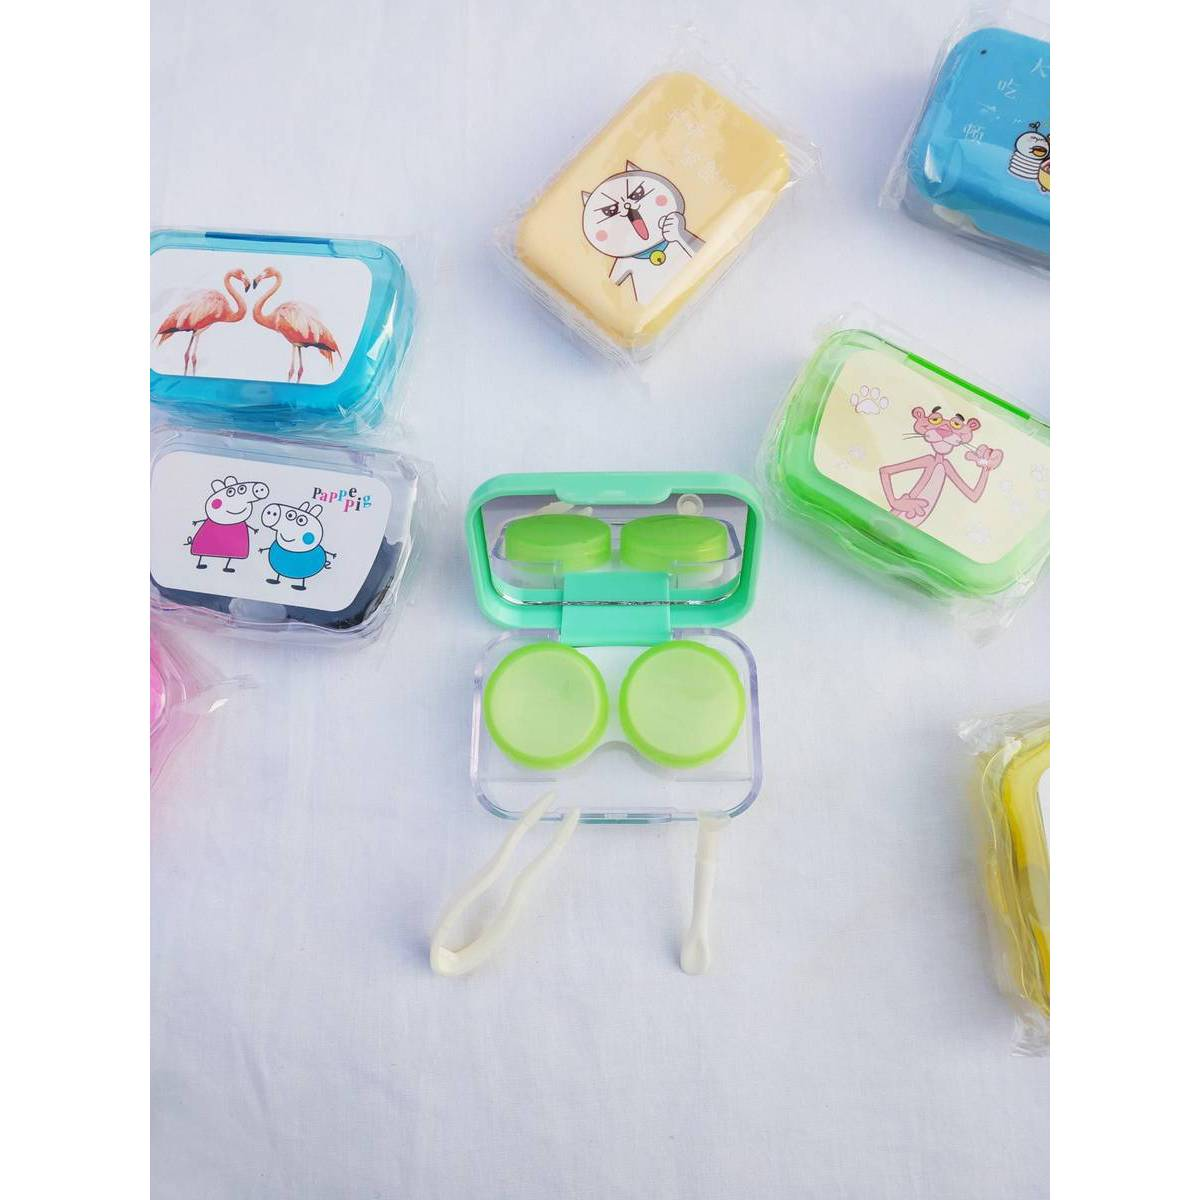 Plastic Contact Lens Case Travel Kit Easy Take Container Hold Cute Style Pocket Mini Lenses Storage Box - Random Color